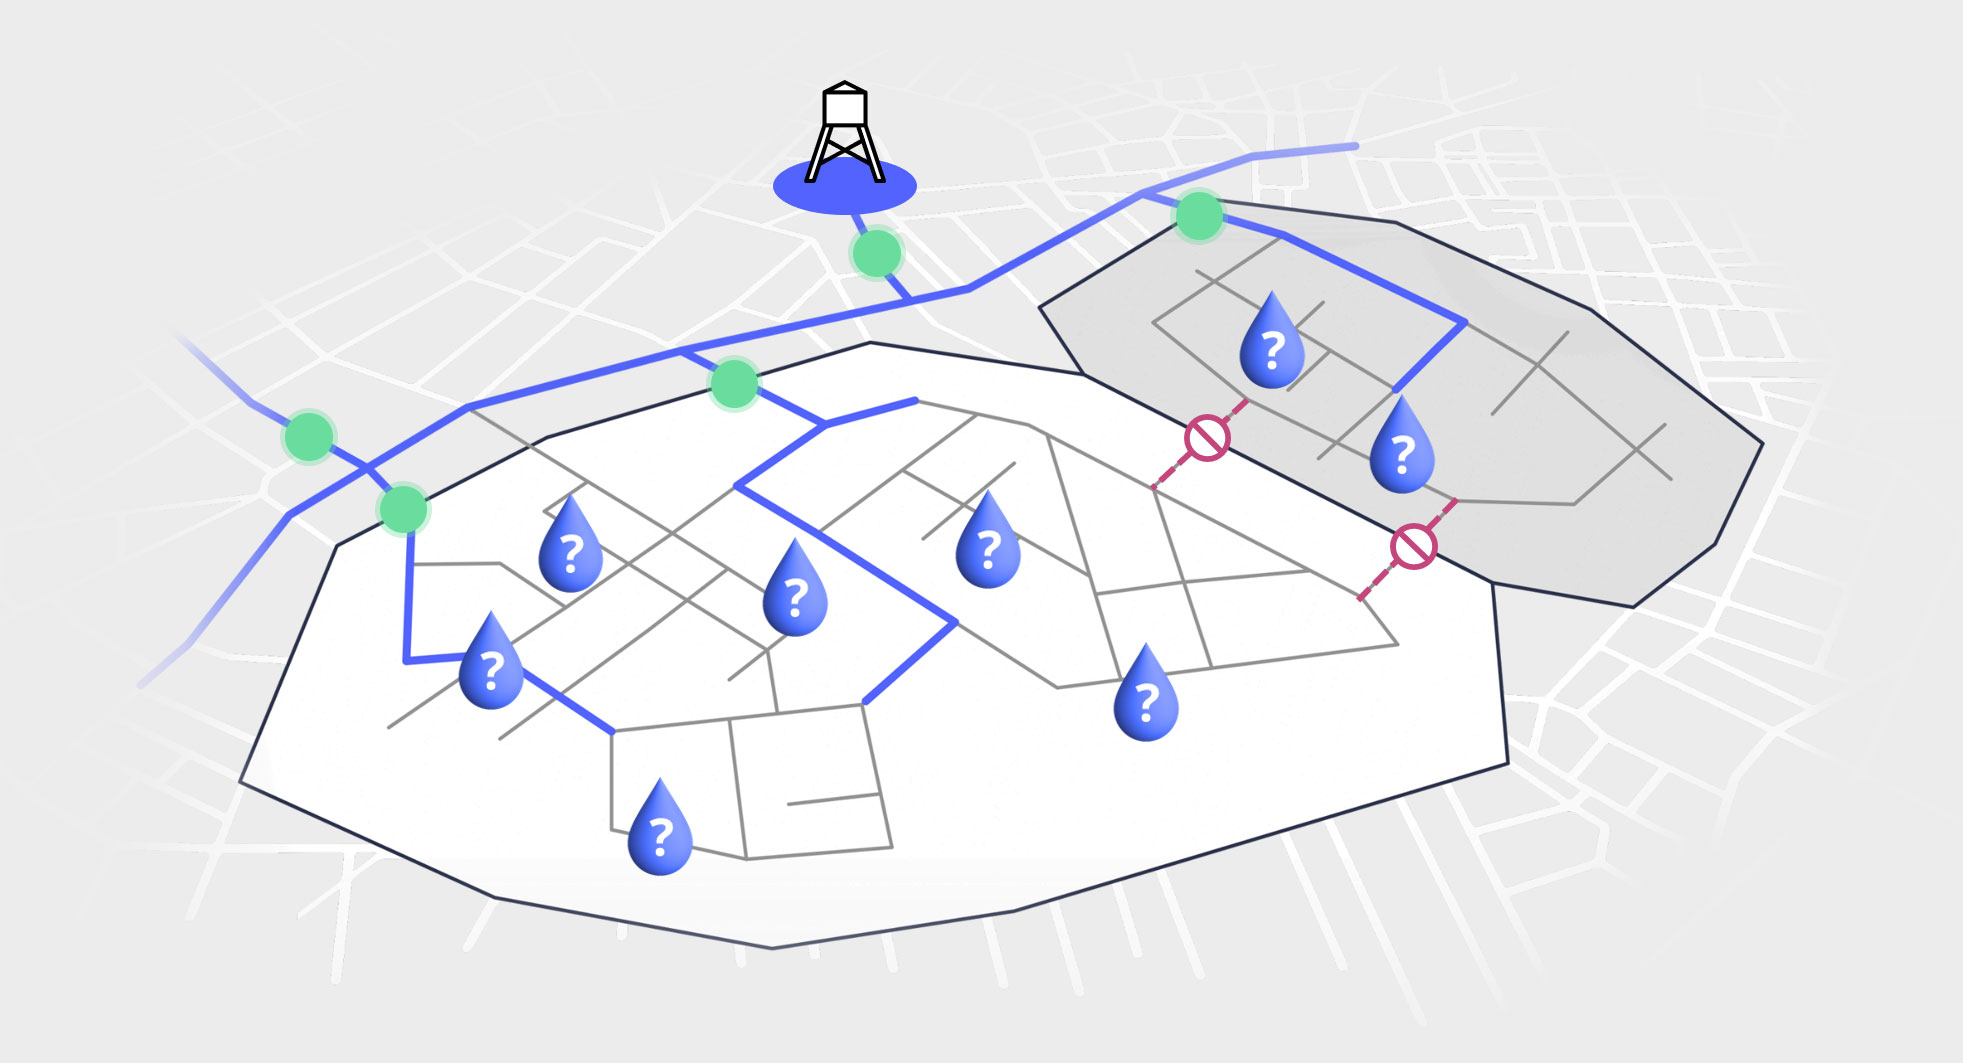 Zoning Water Loss Management